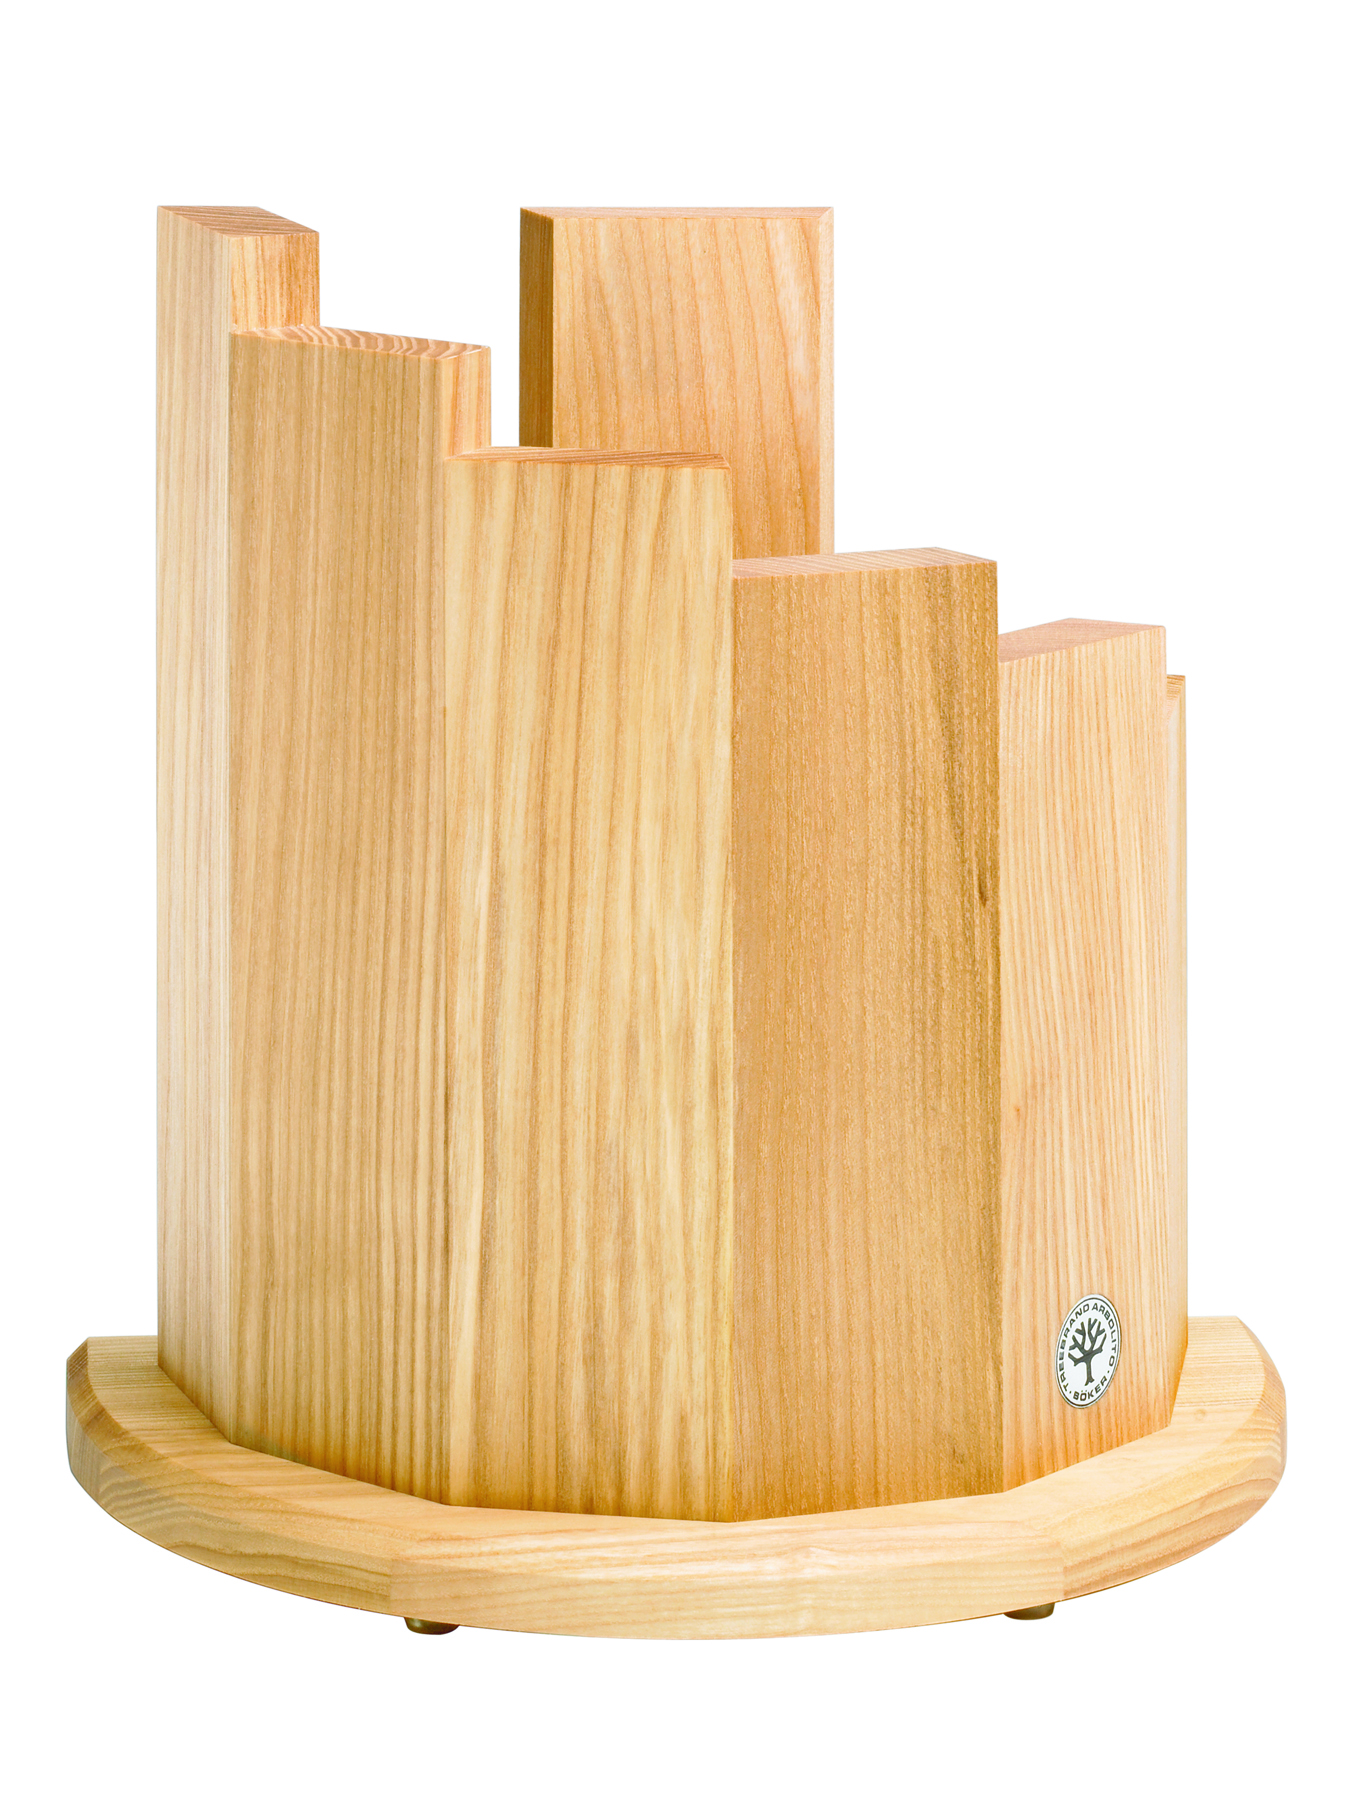 030401 - BOKER KNIFE BLOCK OLIVE MAP:$ 123.96